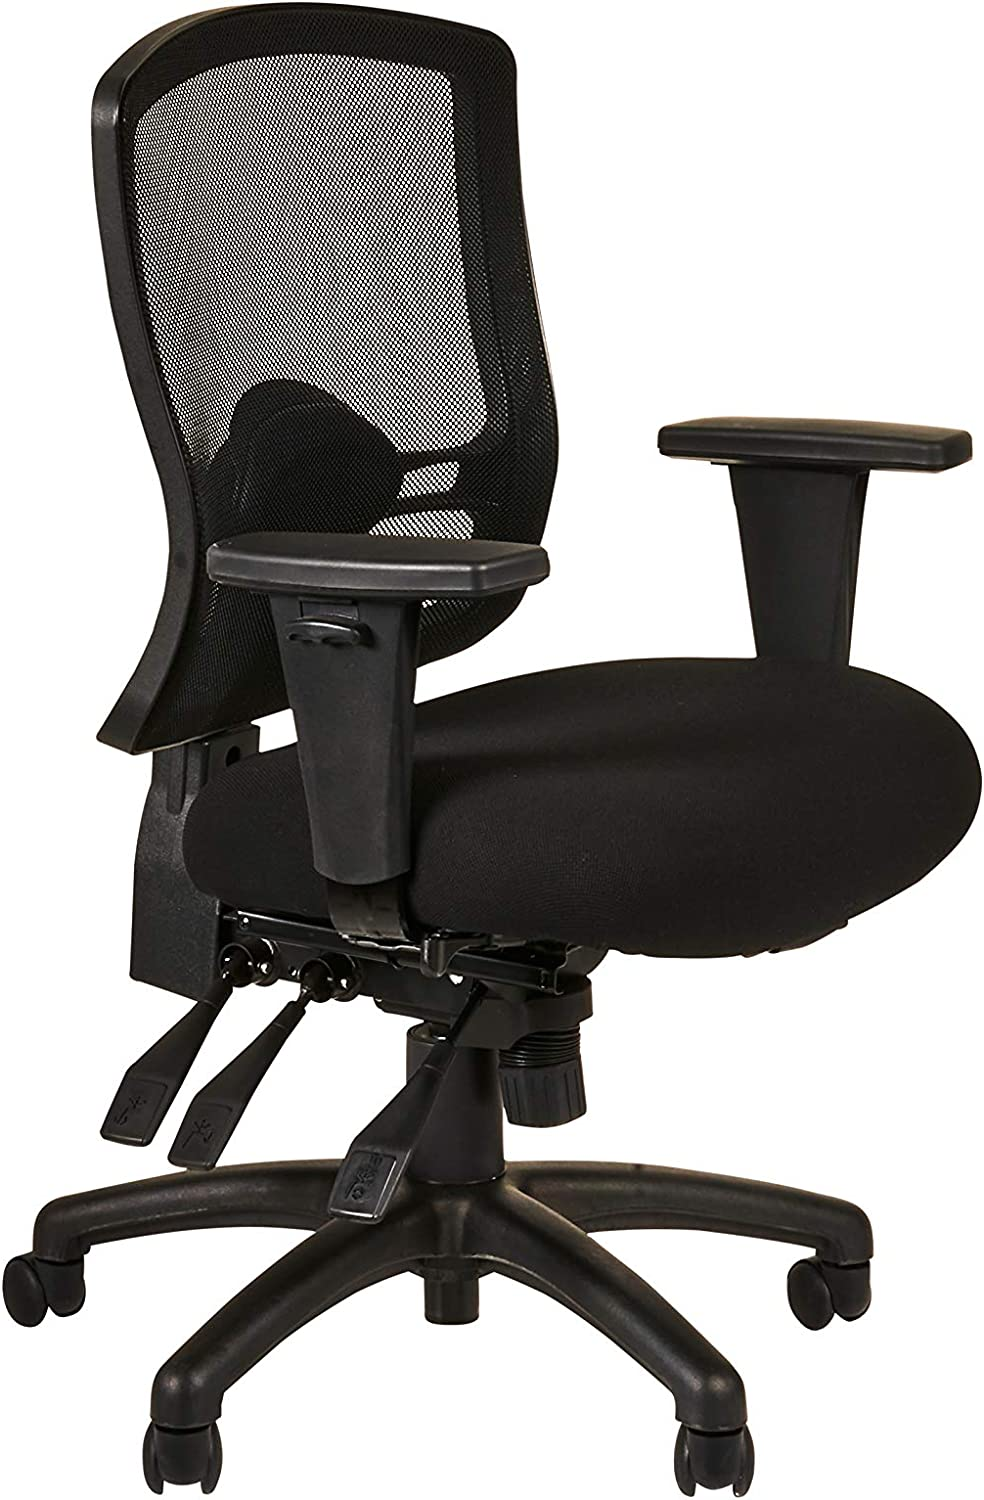 Alera Etros Series Mid-Back Multifunction with Seat Slide Chair, Black